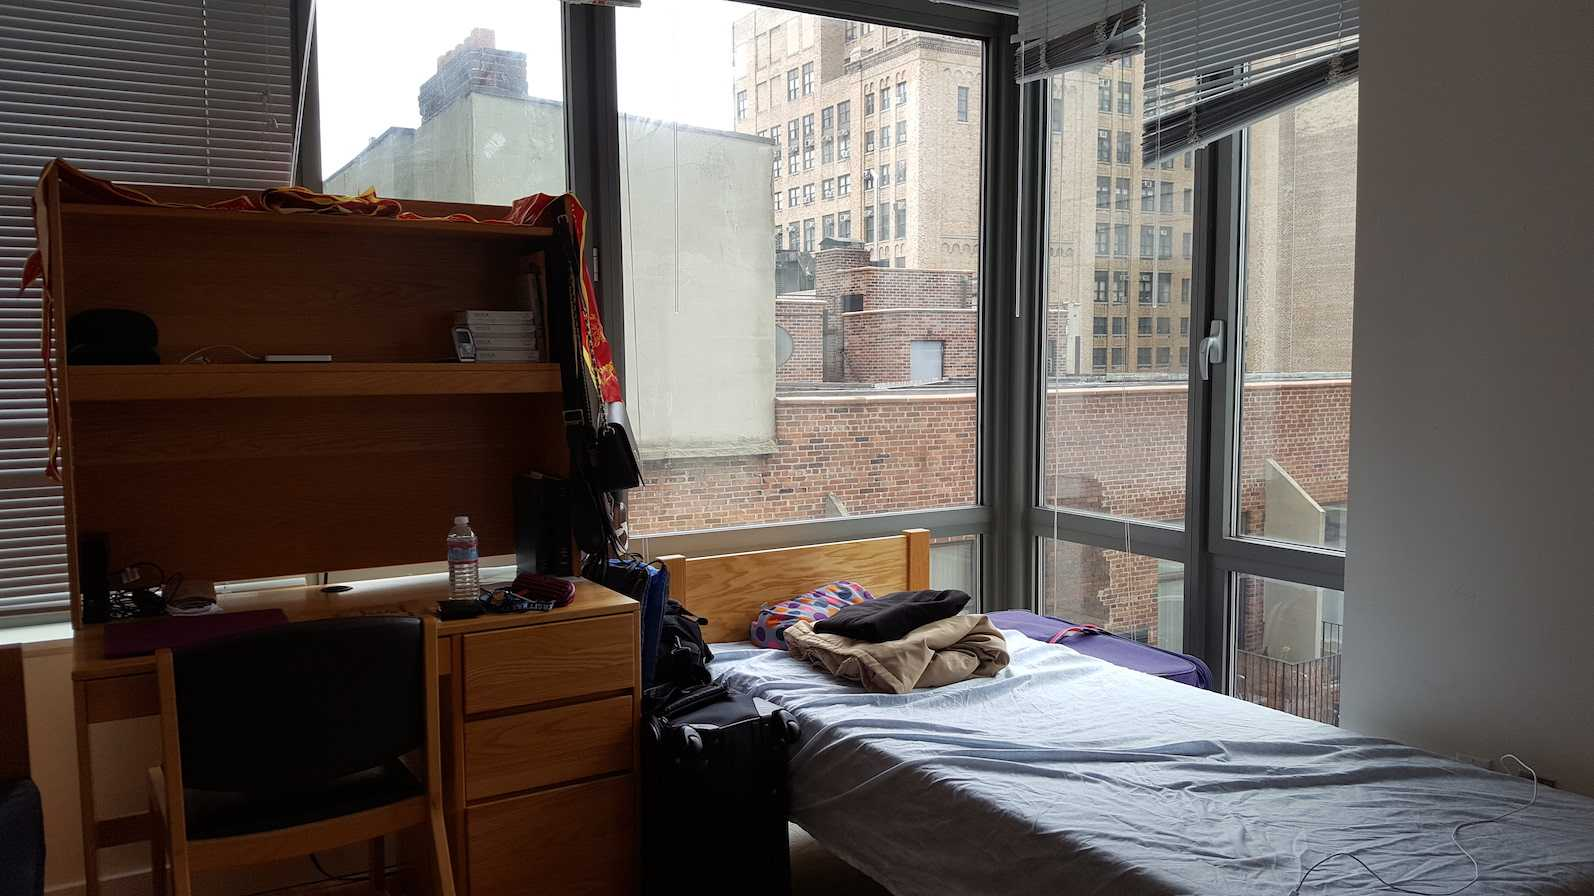 Gramercy Green is known as one of the best NYU dorms, but with segregation, not everyone would have the opportunity to live there.